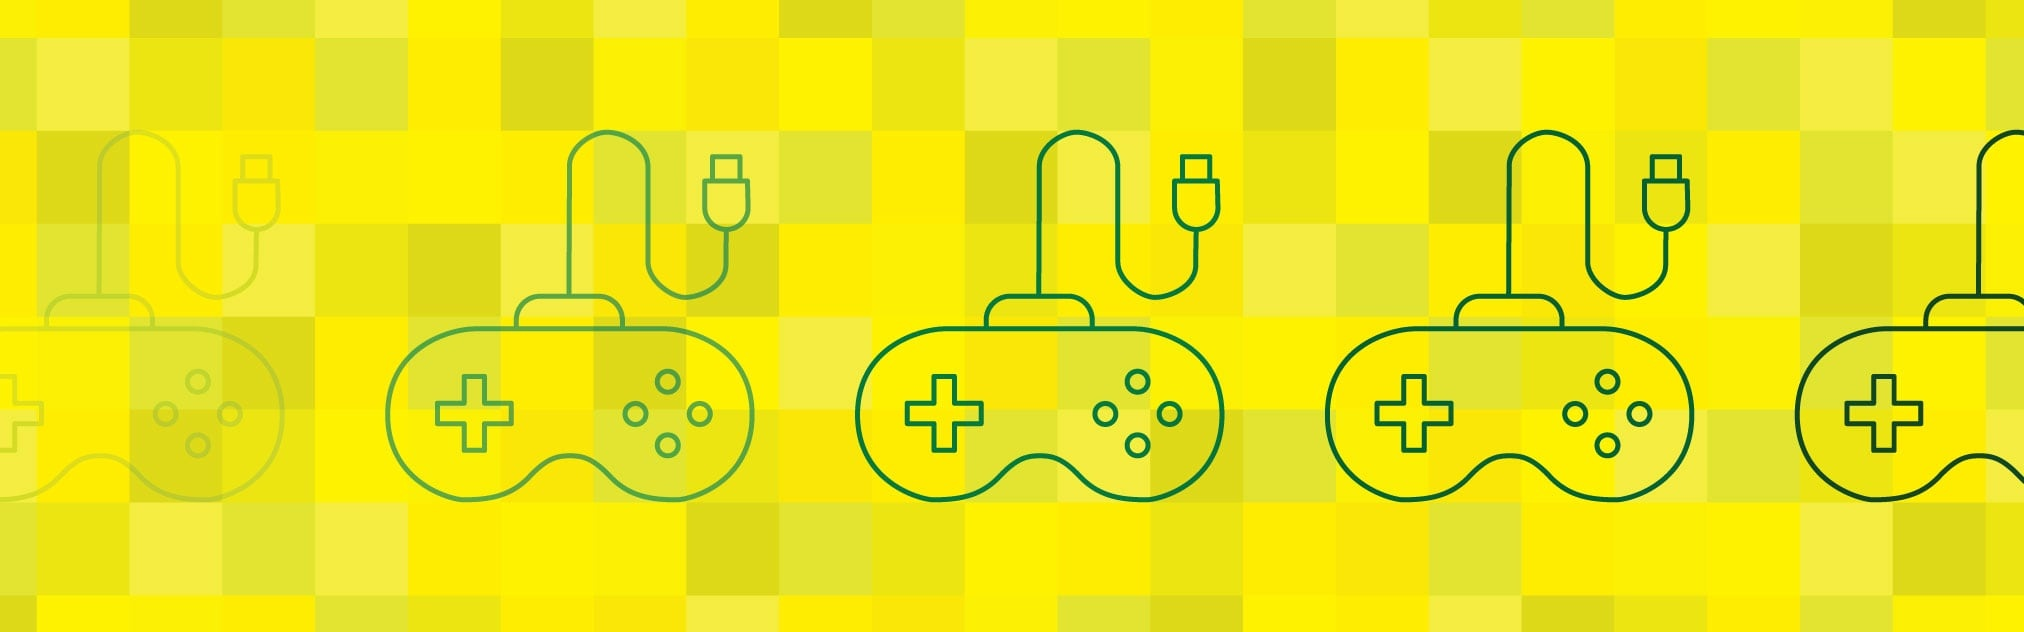 Illustration of eSports showing video game controllers on a yellow background